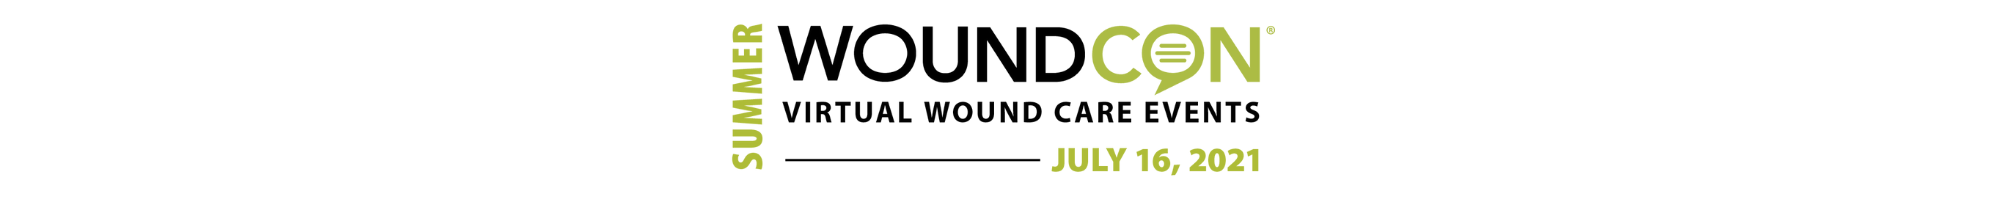 WoundCon Summer 2021 – An Online Virtual Wound Care Conference & Expo